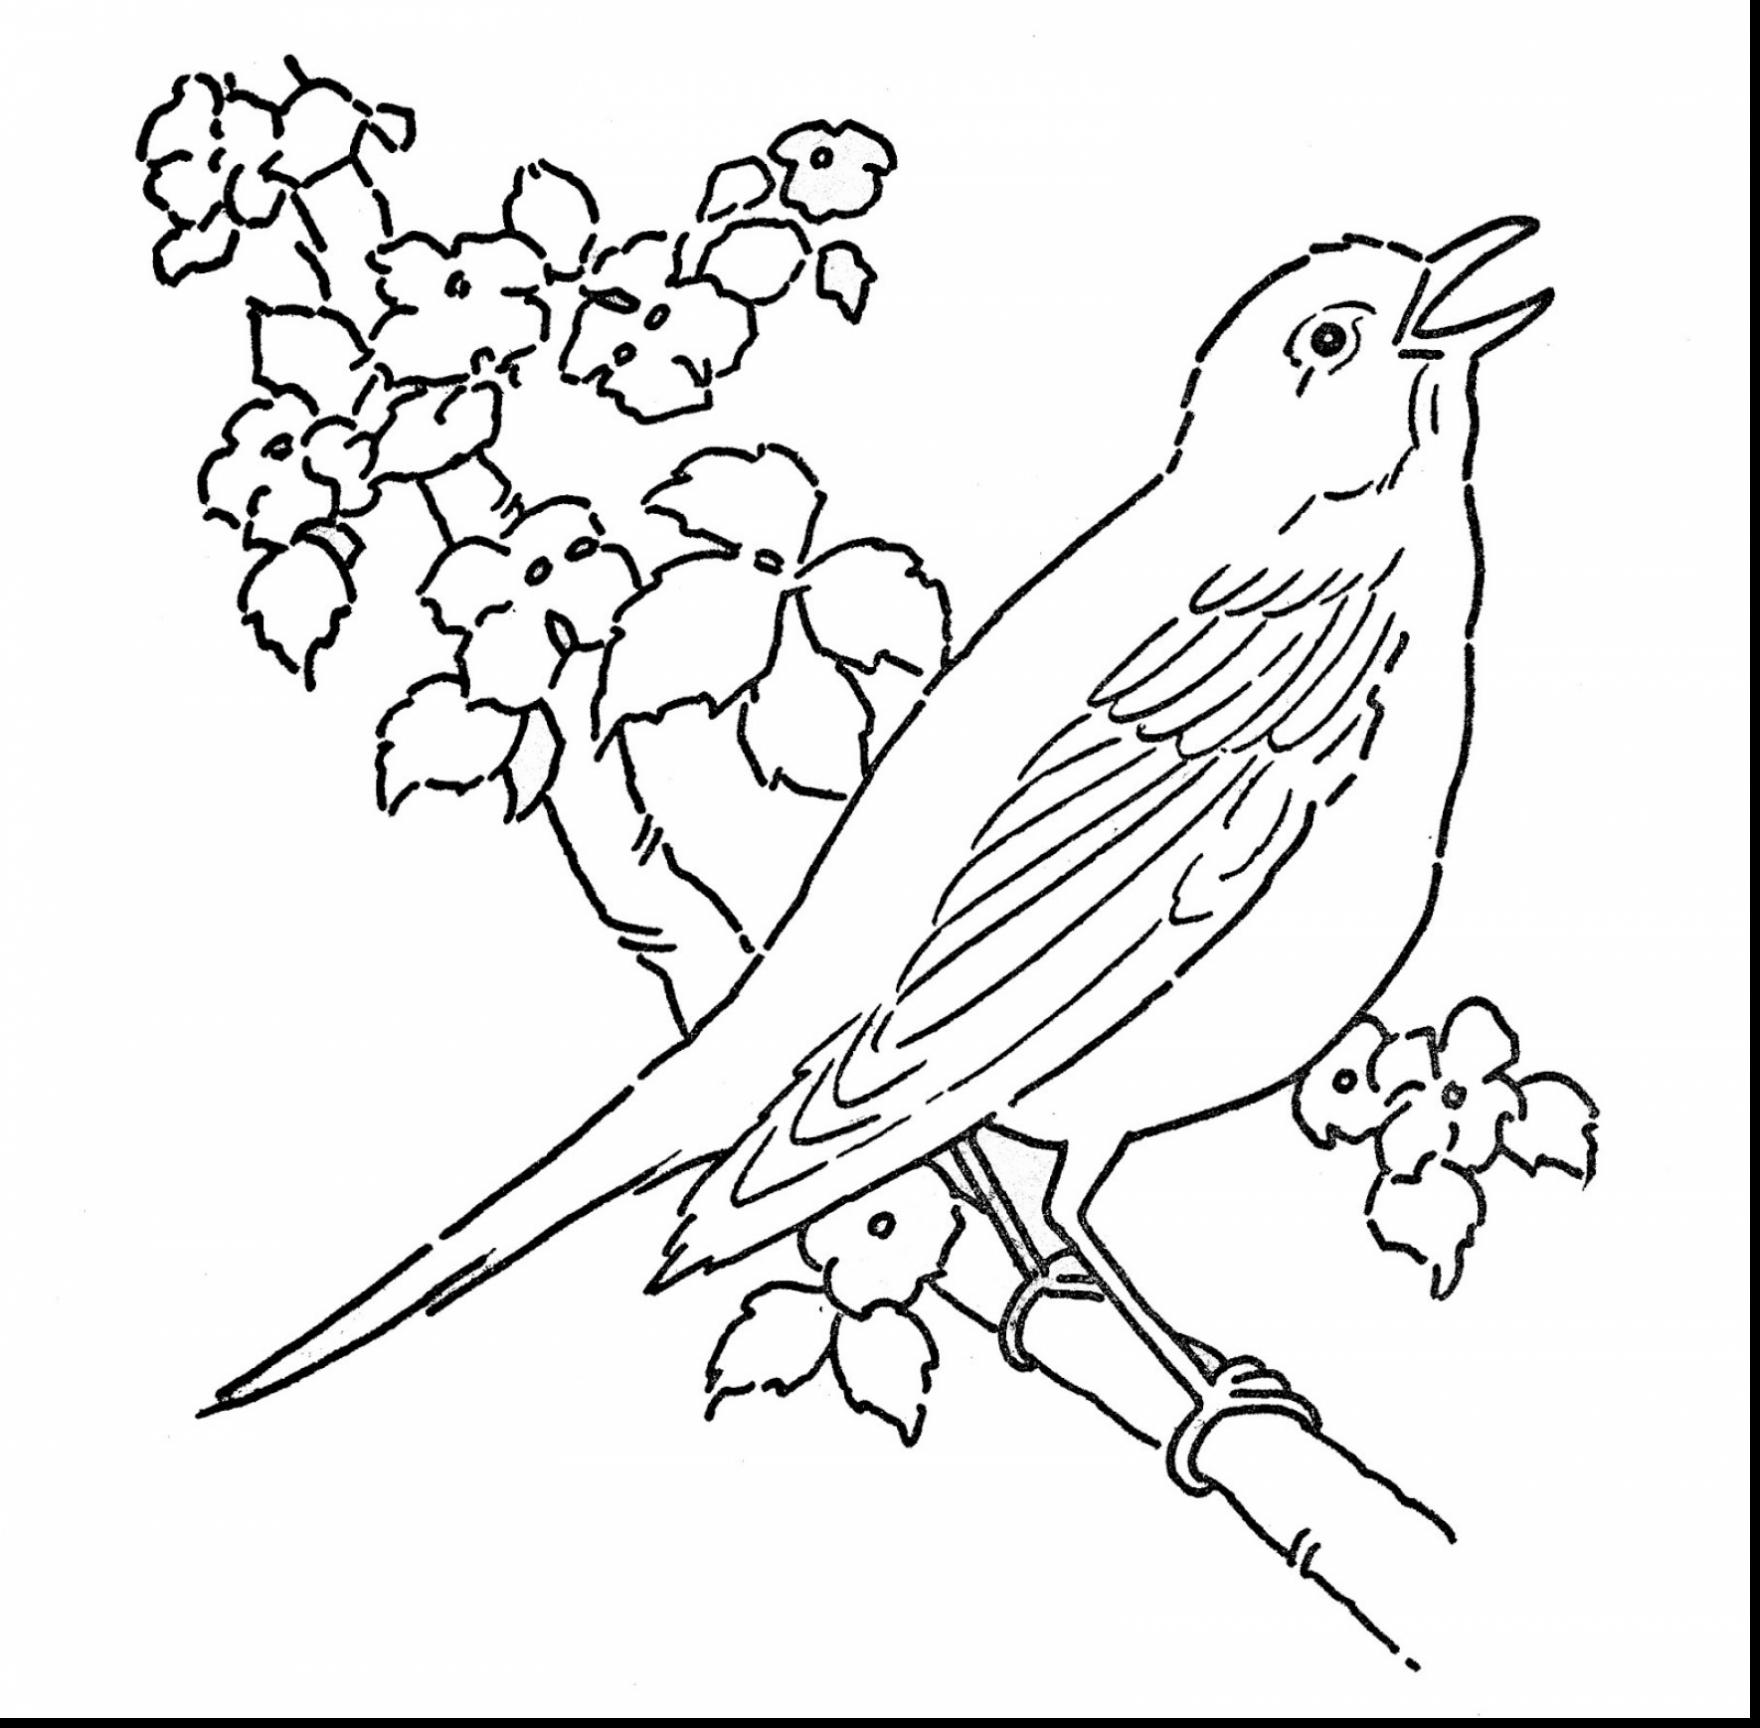 Rainforest Birds Coloring Pages At Getdrawings Free Download